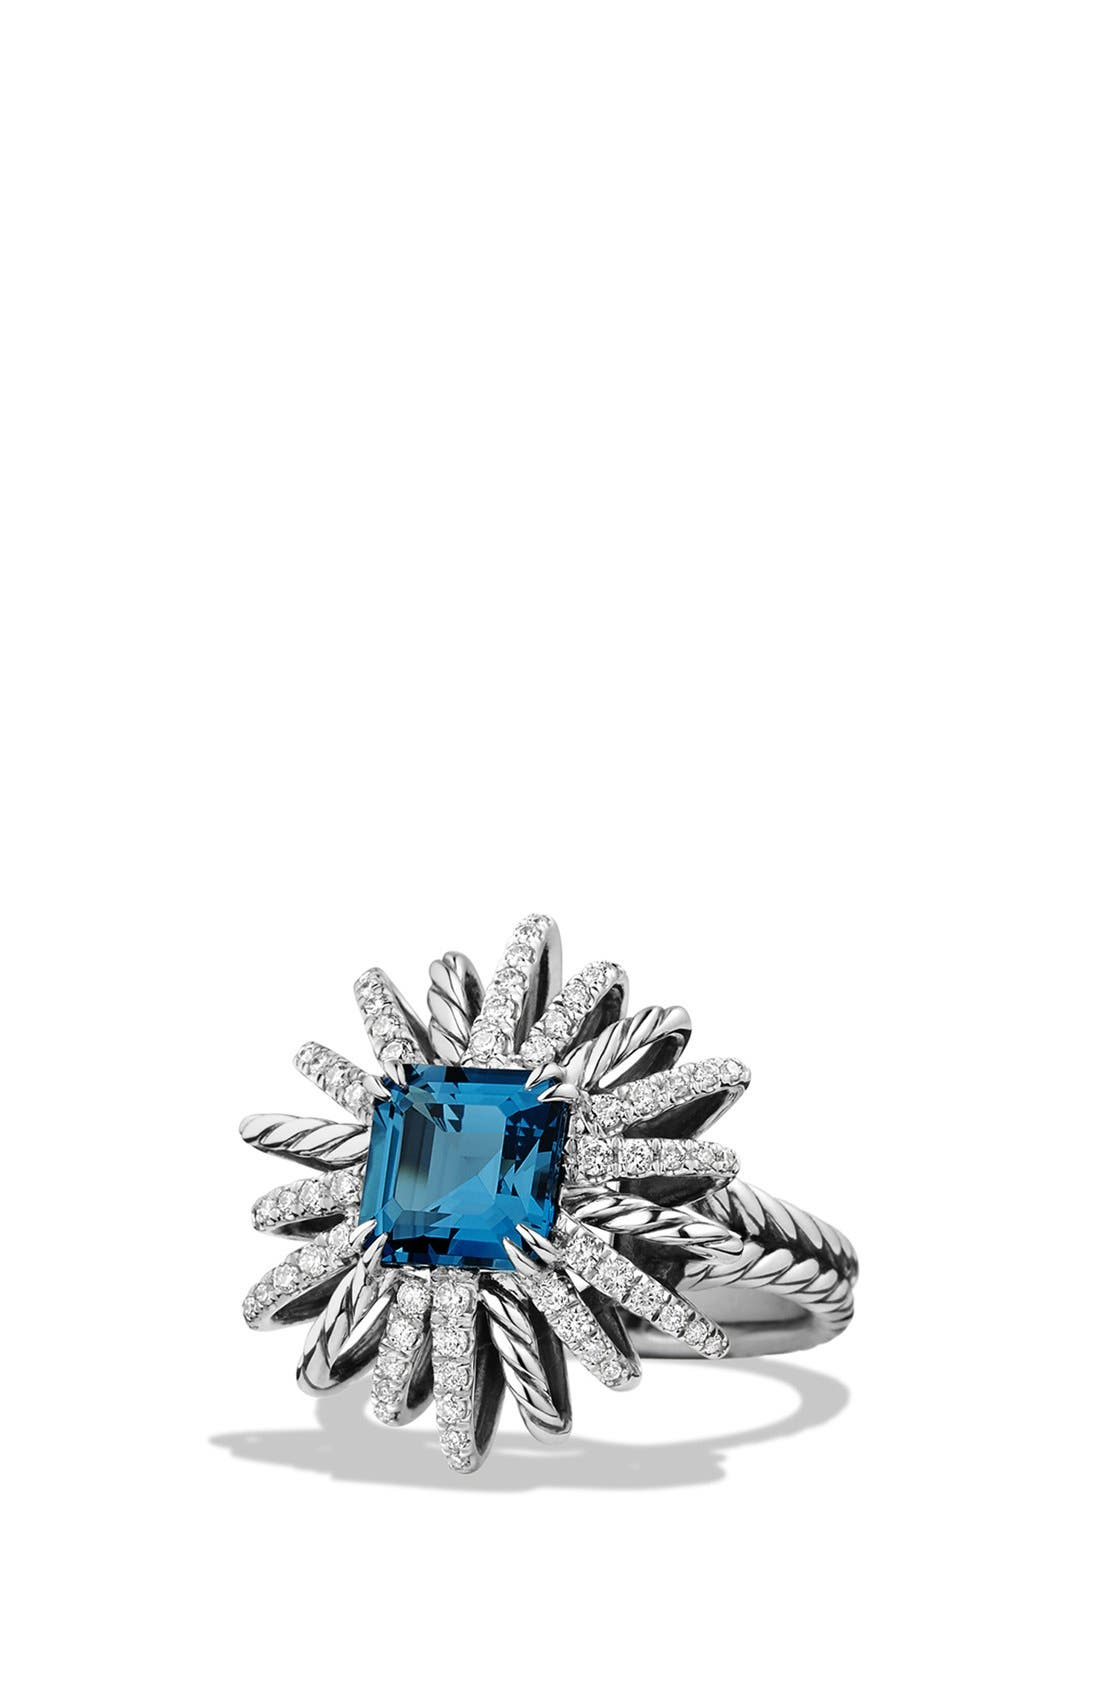 Alternate Image 1 Selected - David Yurman 'Starburst' Ring with Diamonds in Silver